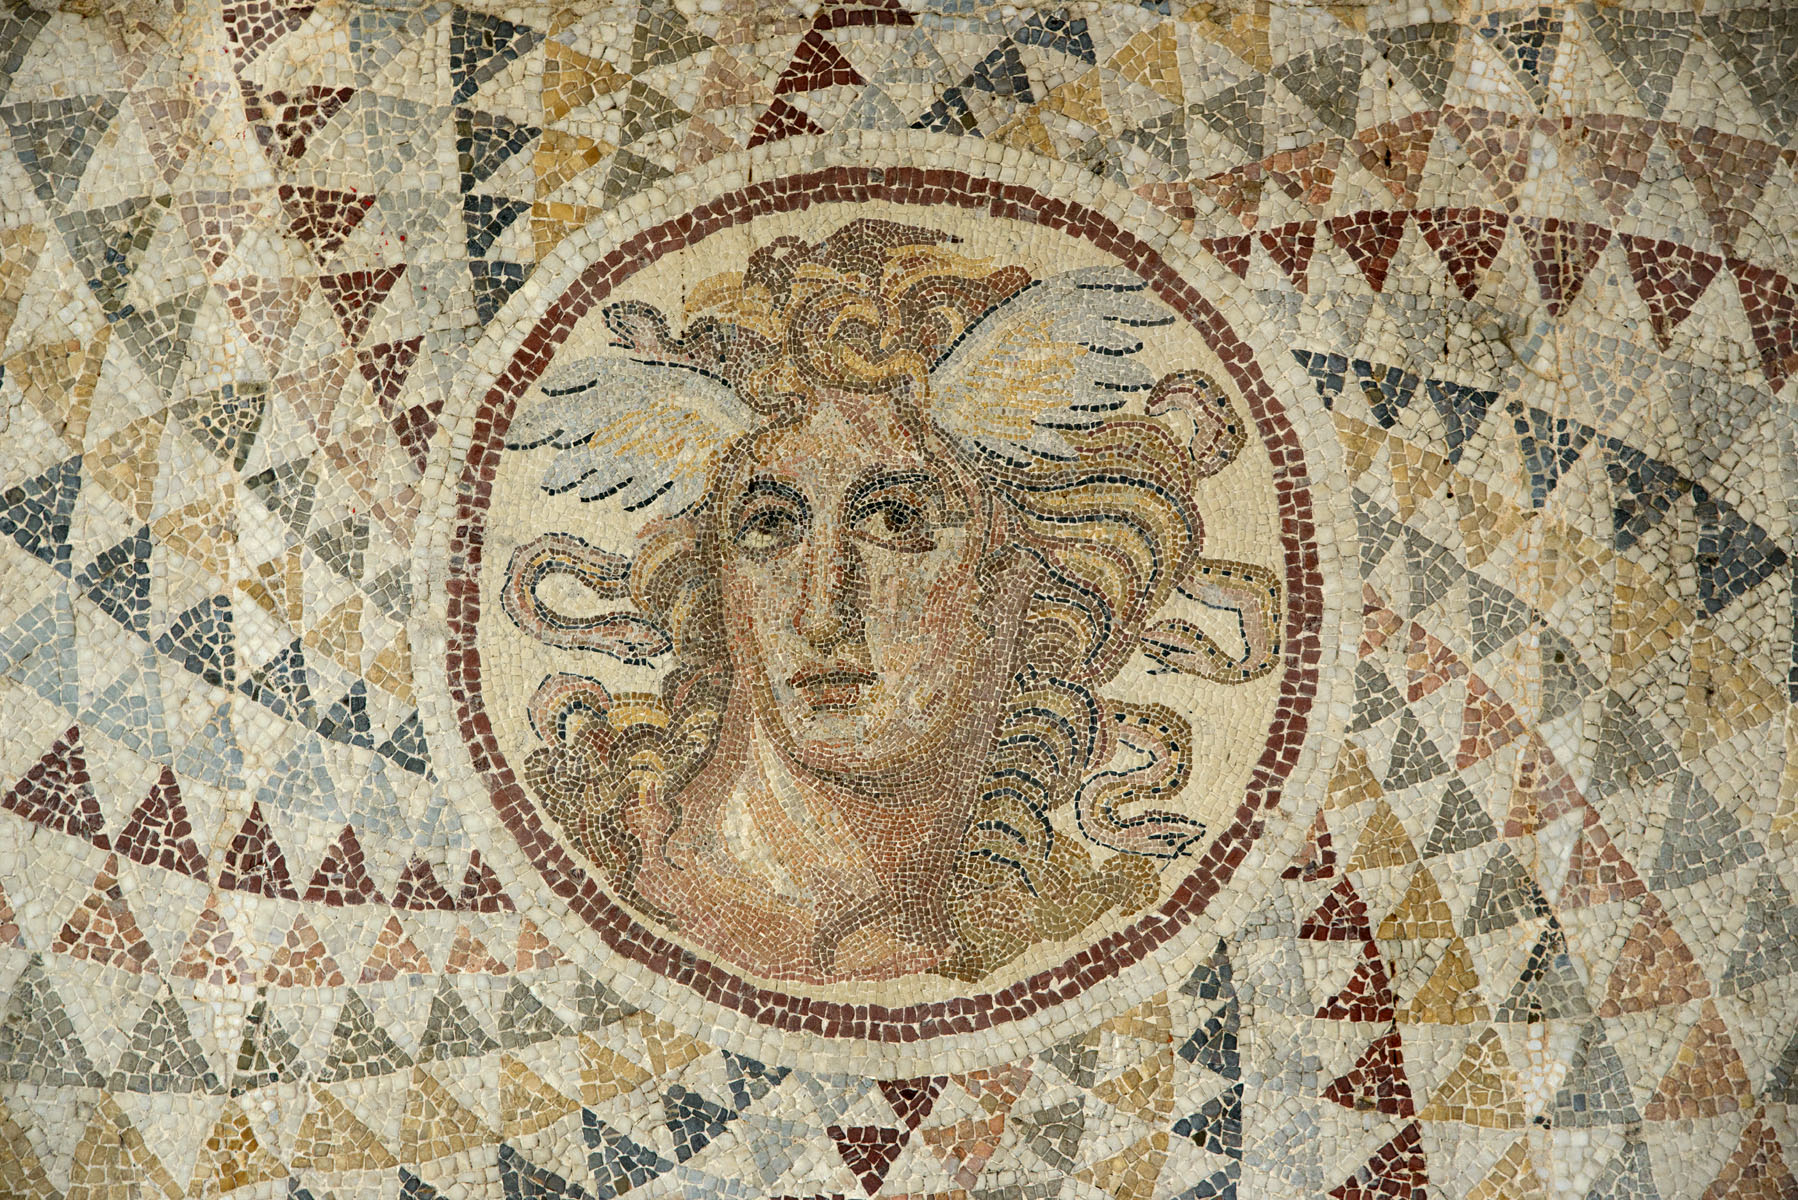 Mosaic floor with Medusa's head. Piraeus. 2nd cent. CE. Athens, National Archaeological Museum